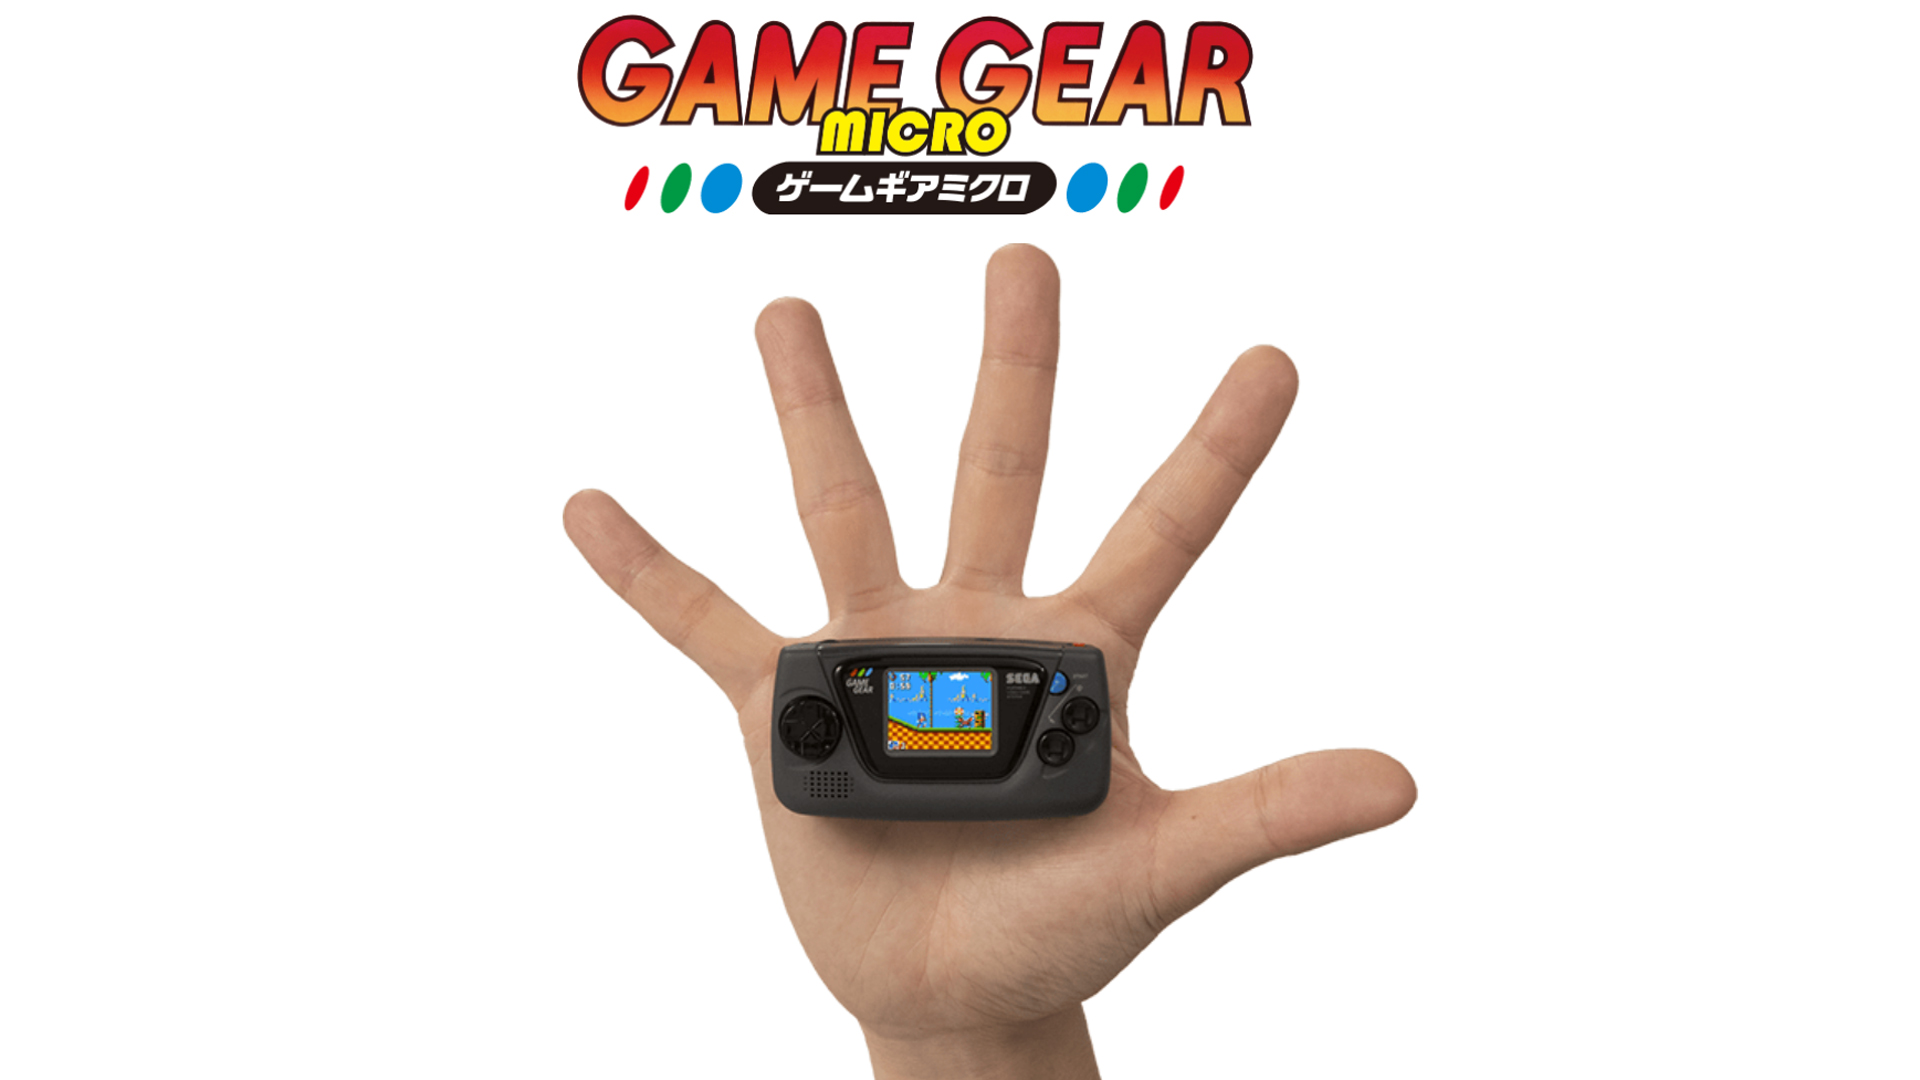 The Sega Game Gear Micro and Genesis Mini have had some success, pushing Sega to continue to be interested in future Mini players. Here's hoping a Dreamcast Mini comes next.